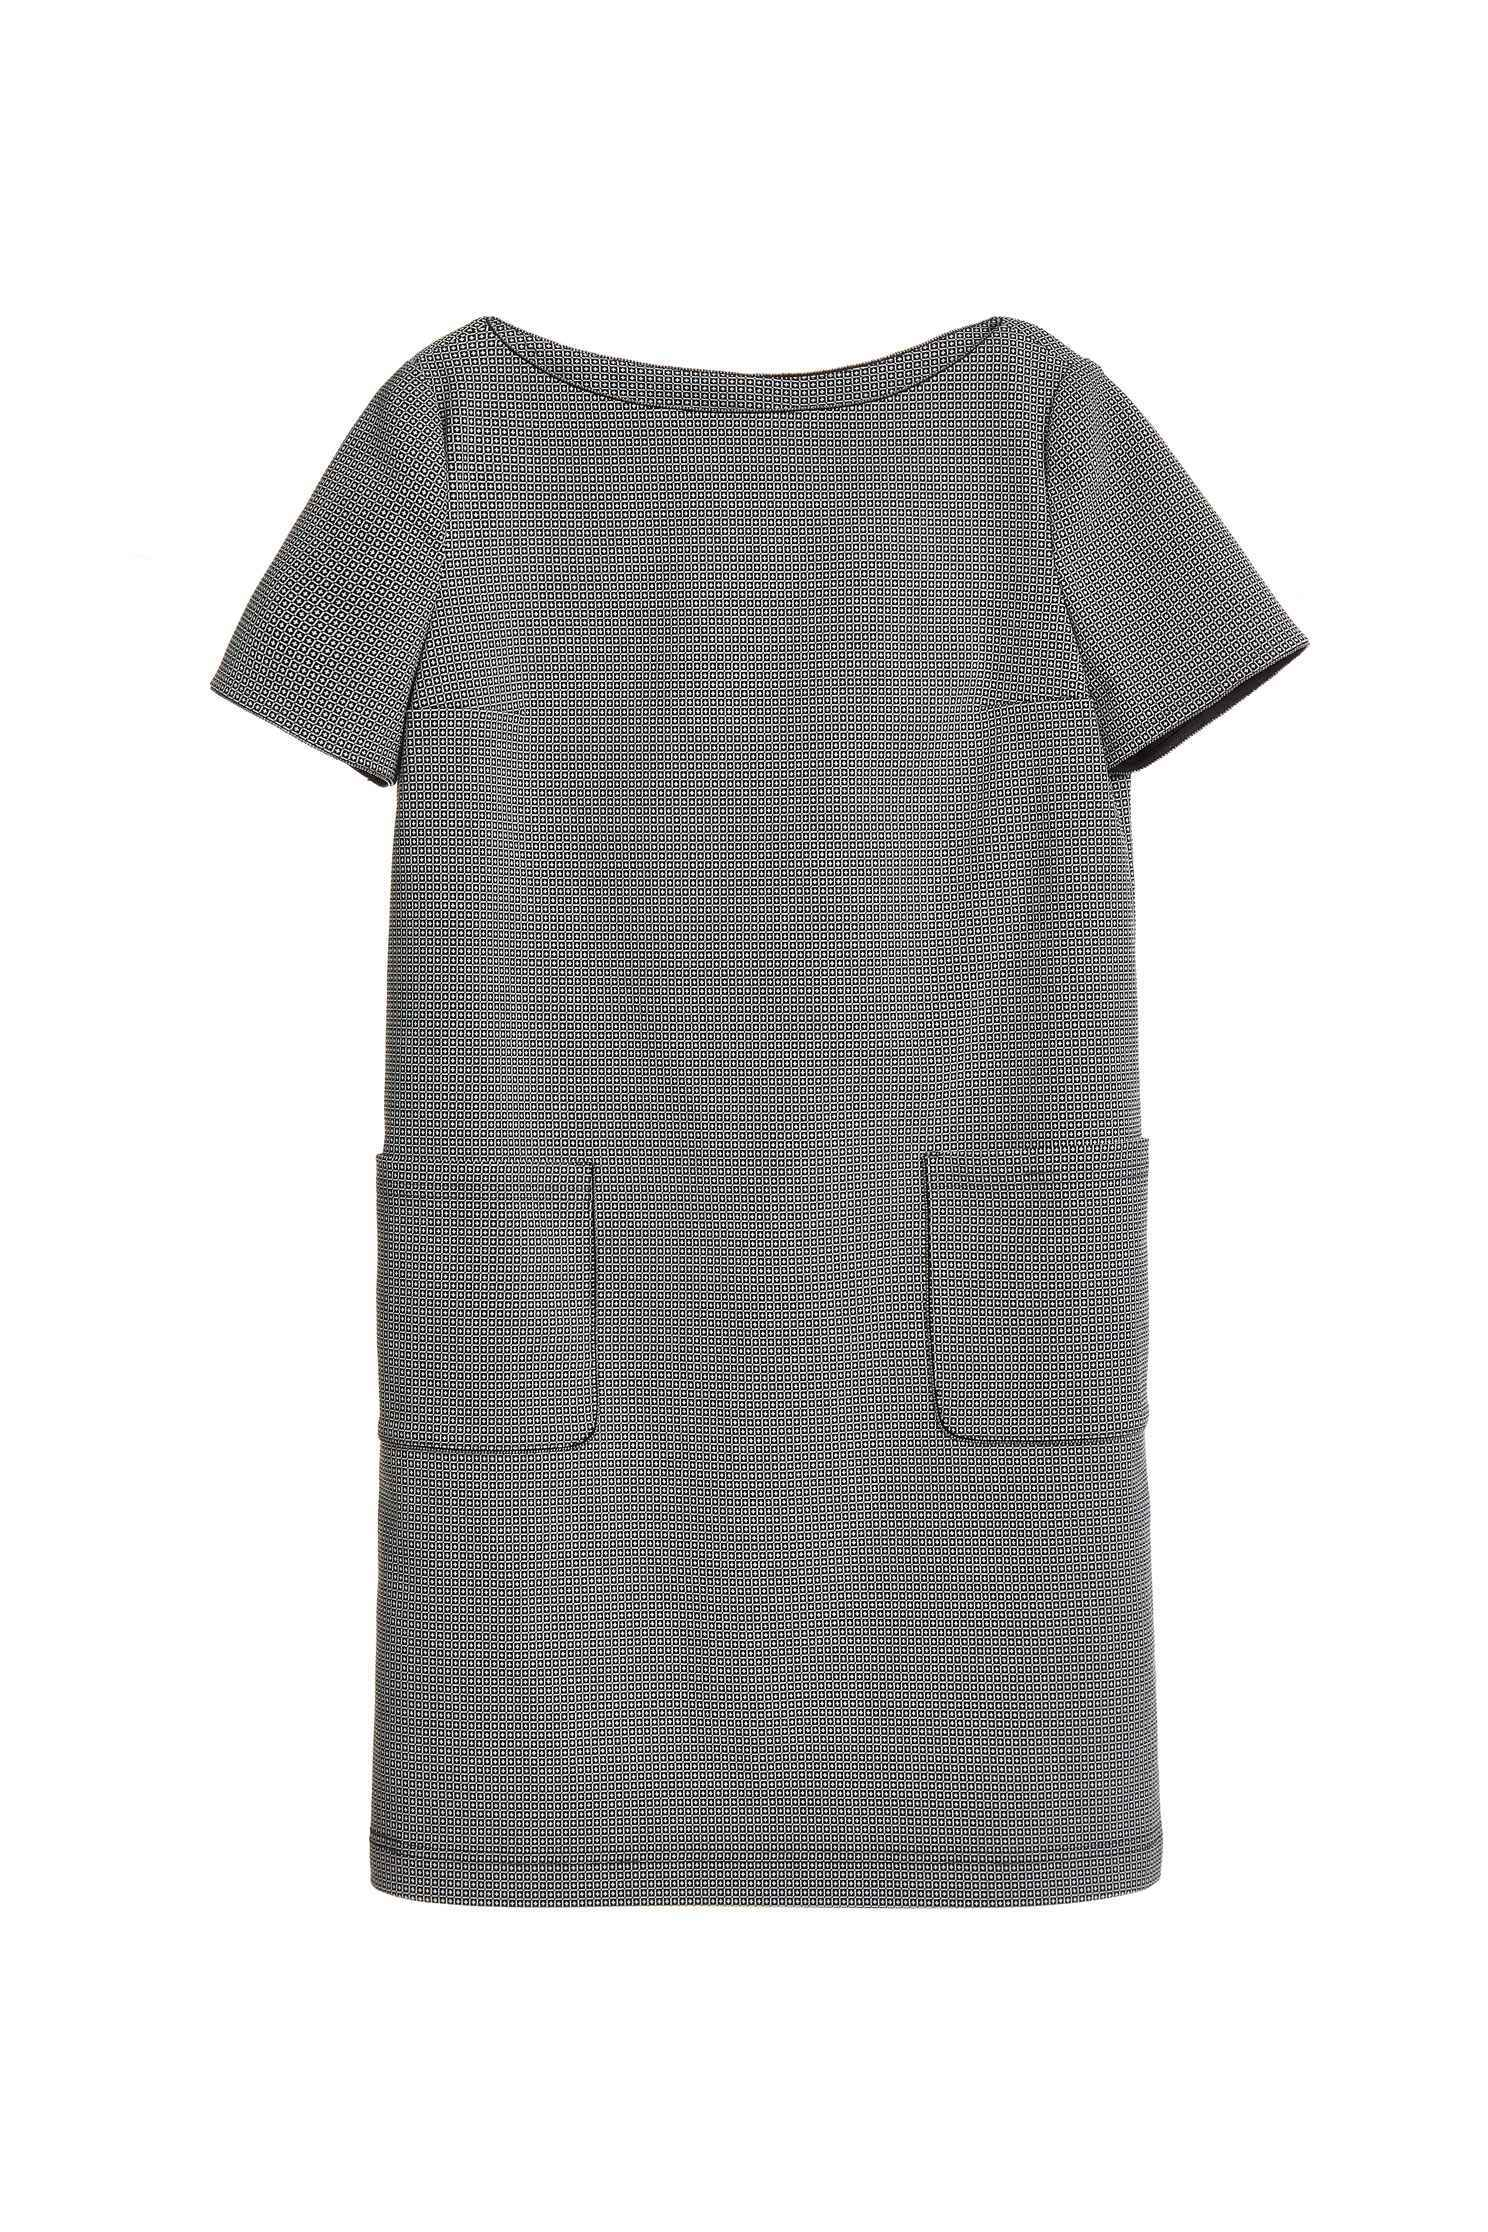 Double pocket classic dress